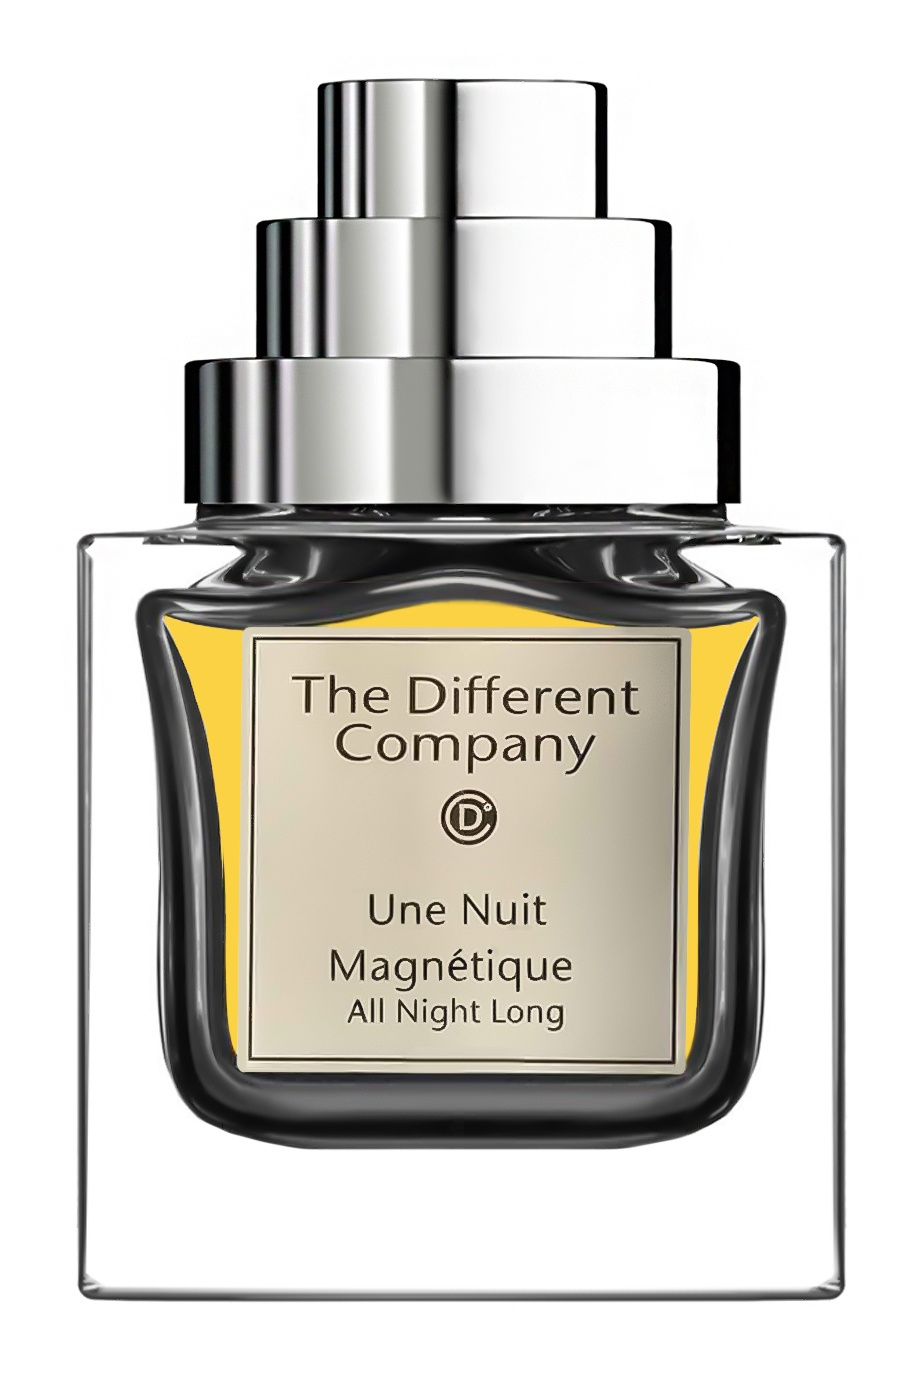 Парфюмерная вода Une Nuit Magnetique, 50ml The Different Company (фото)